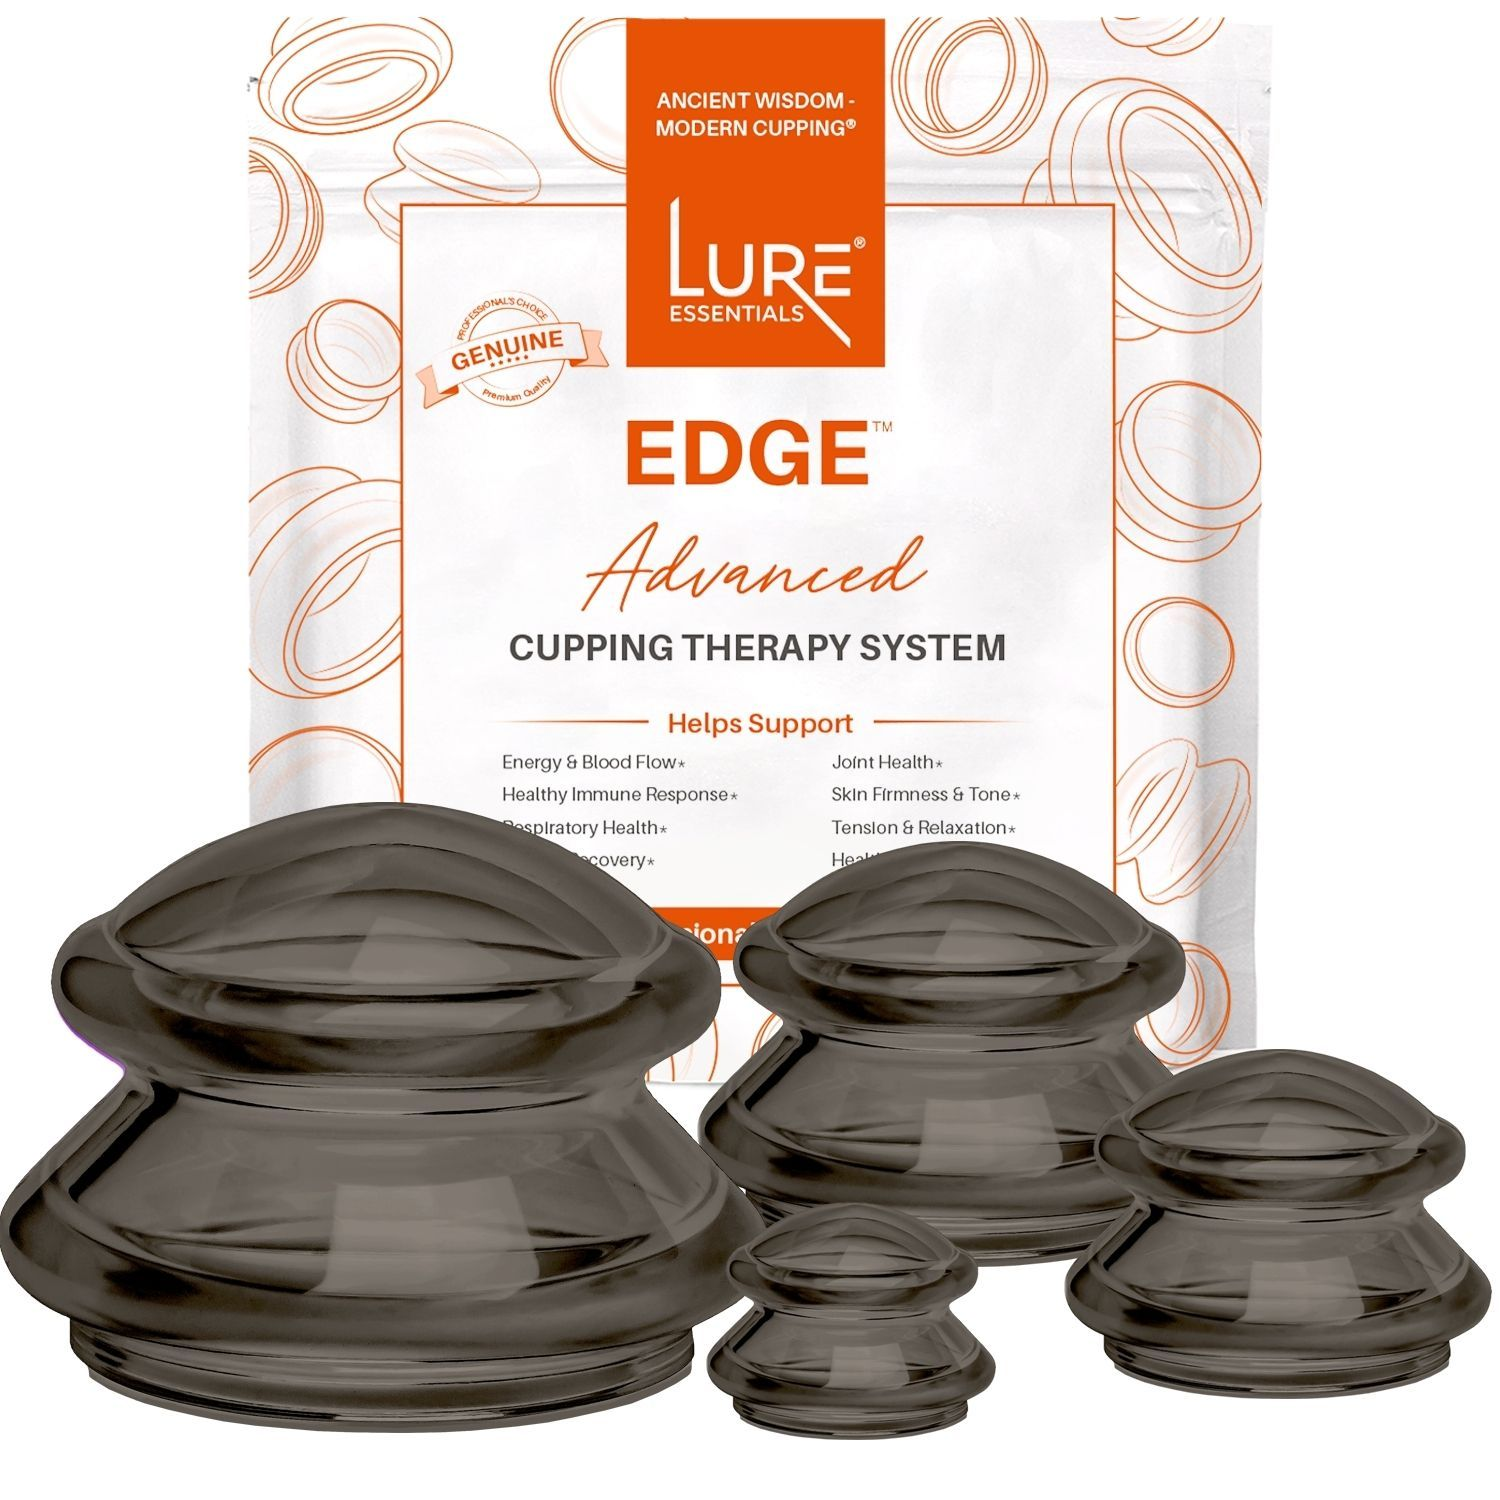 EDGE™ Cupping Set of 4 - Onyx